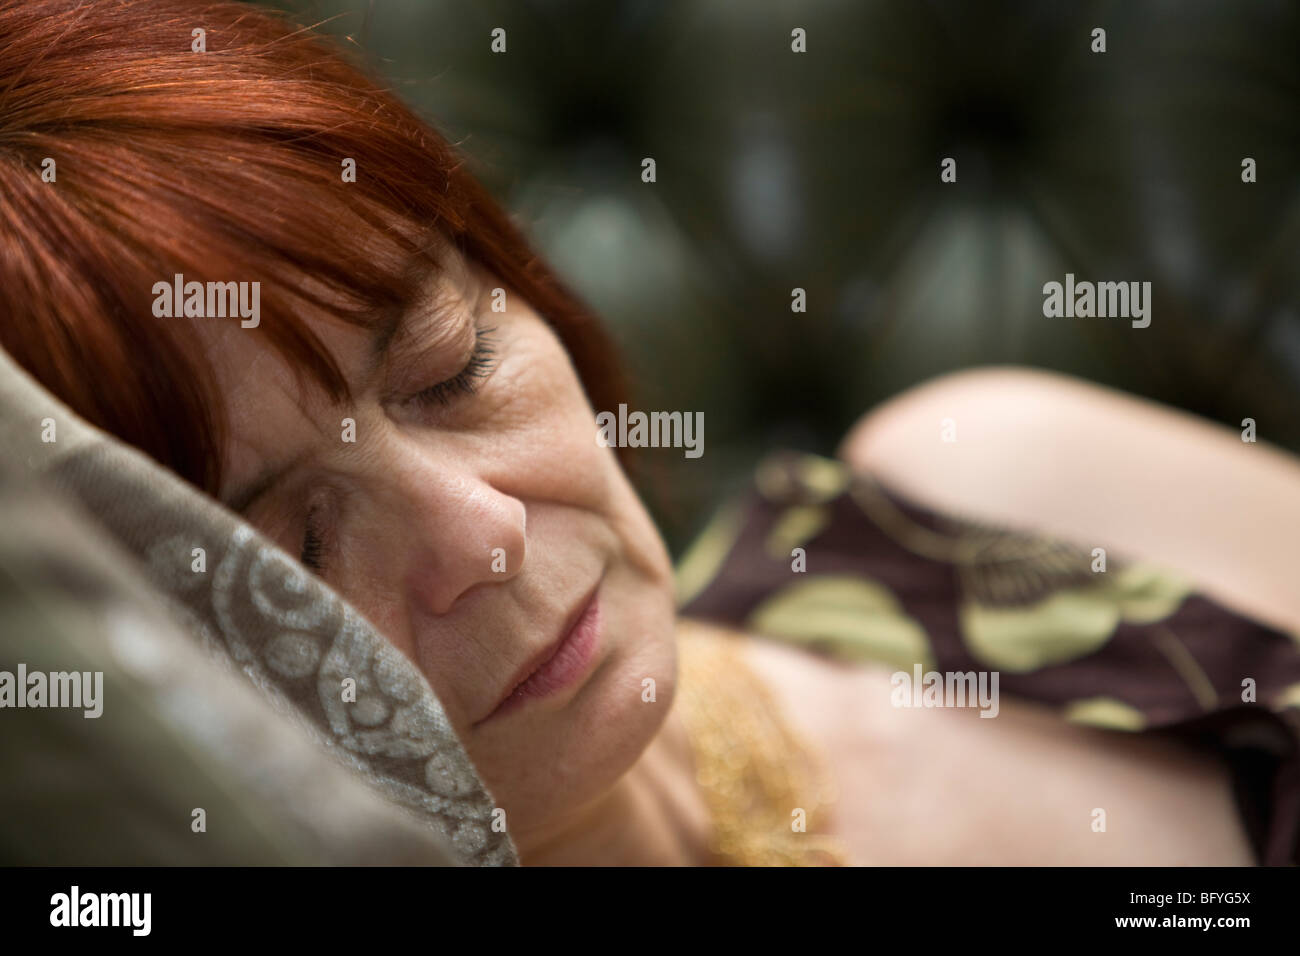 Mature lady Sleeping on couch - Stock Image